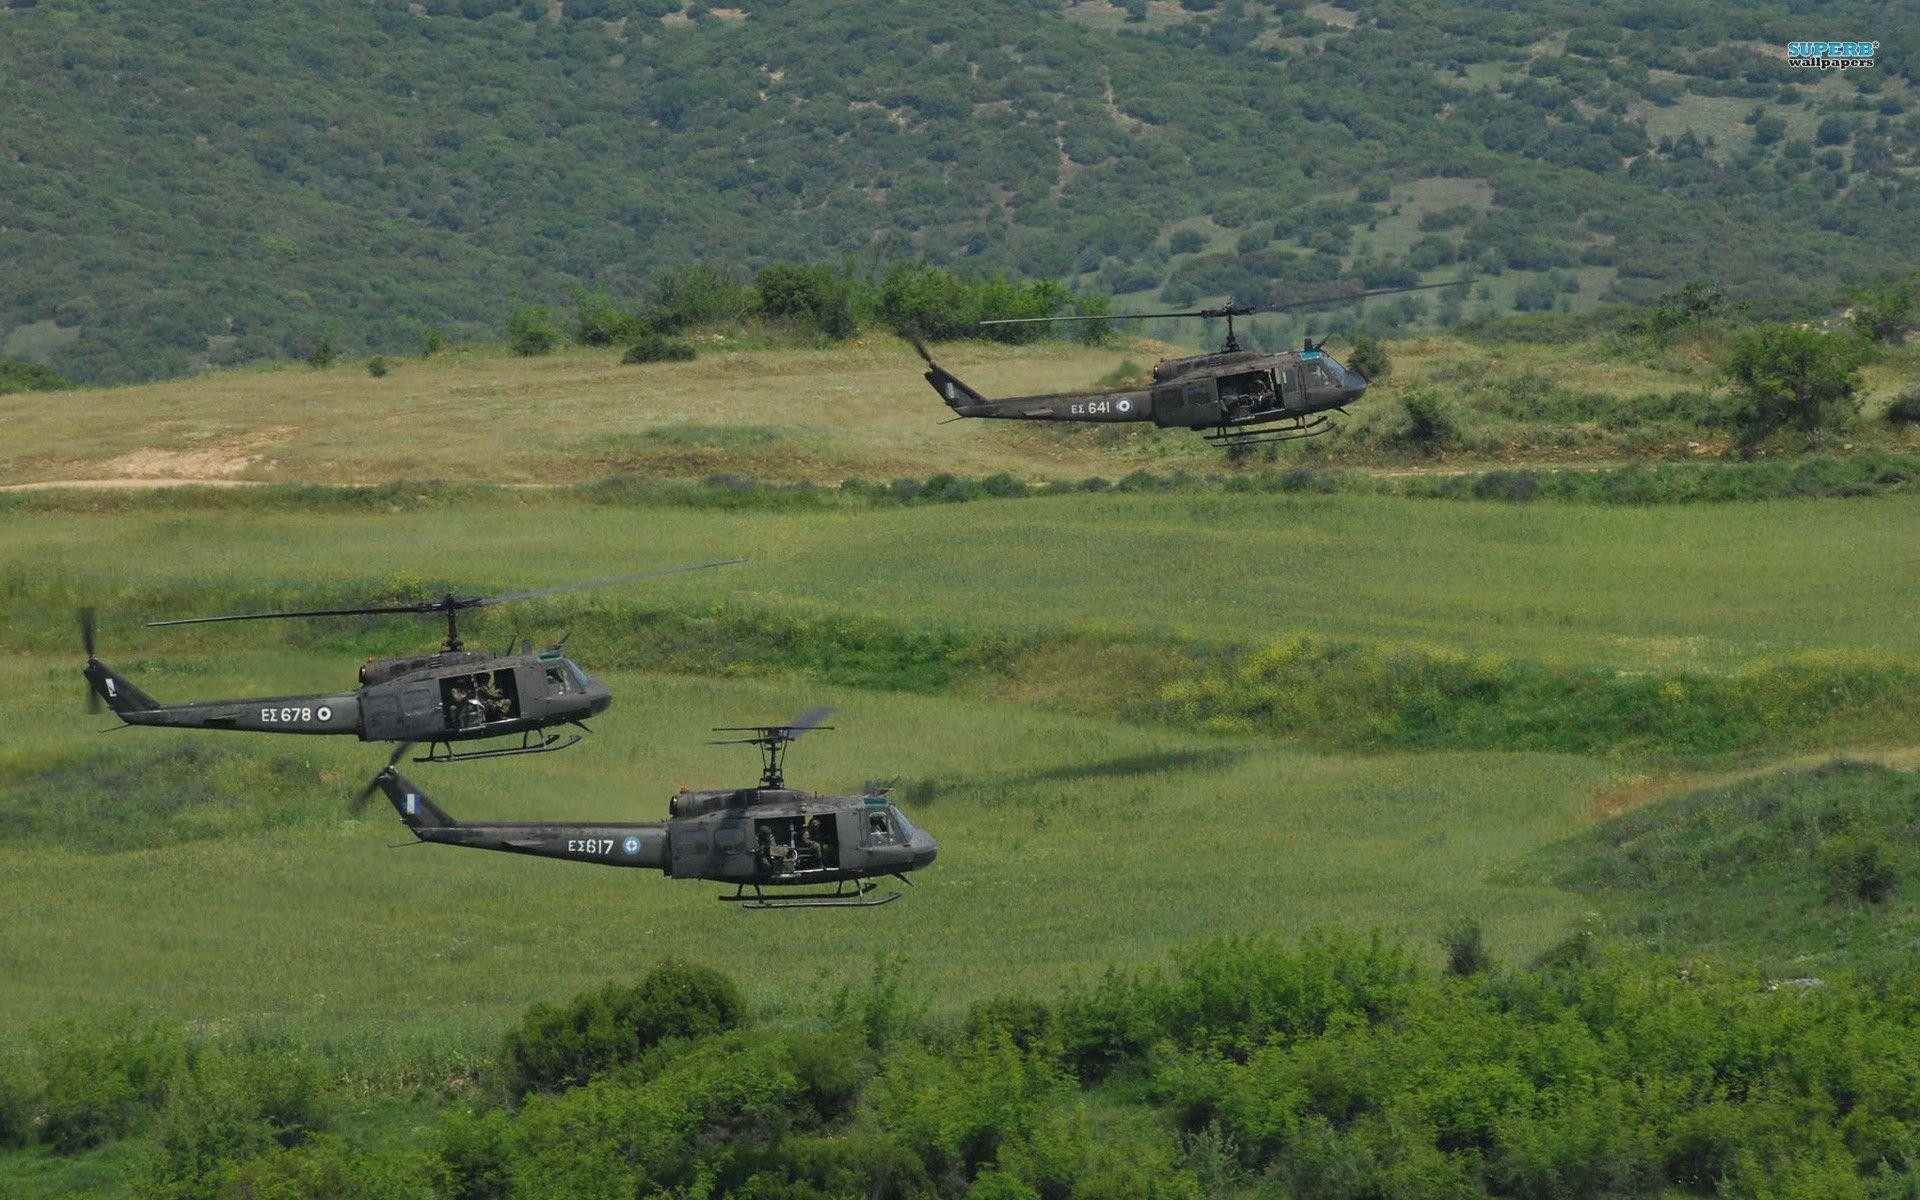 """Res: 1920x1200, Bell UH-1 Iroquois """"Huey"""" wallpaper - Aircraft wallpapers - #"""